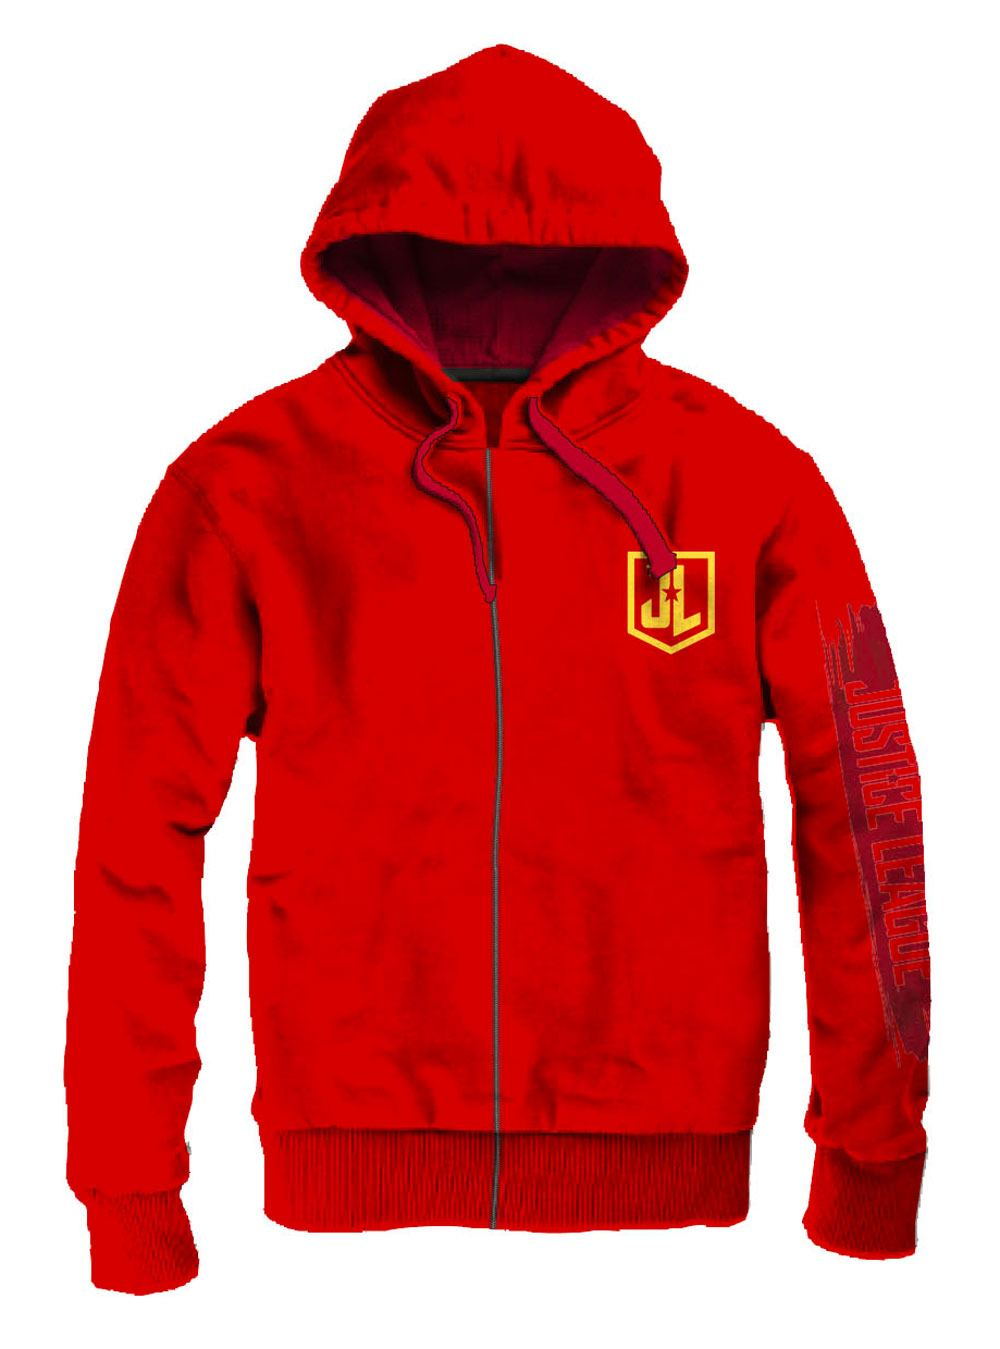 Justice League Hooded Sweater Flash Logo Size L